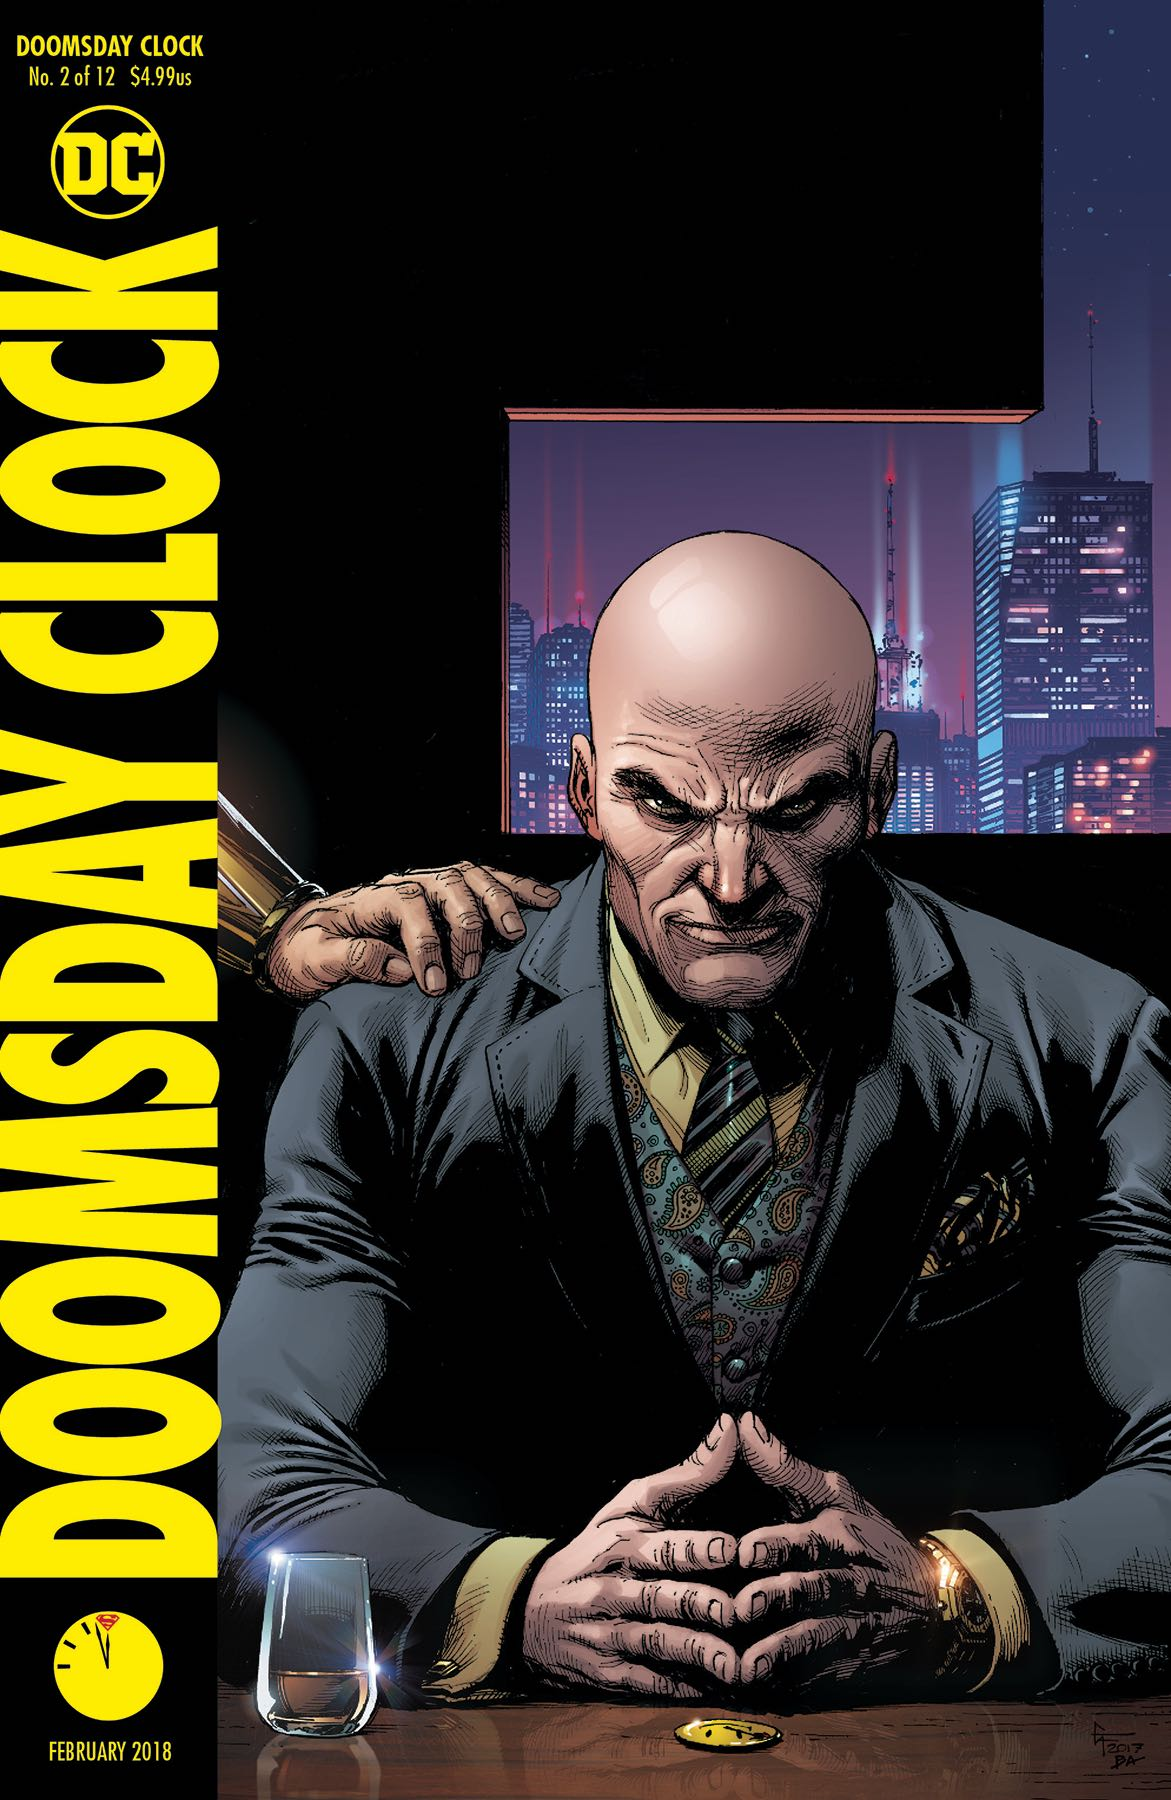 watchmen doomsday clock download